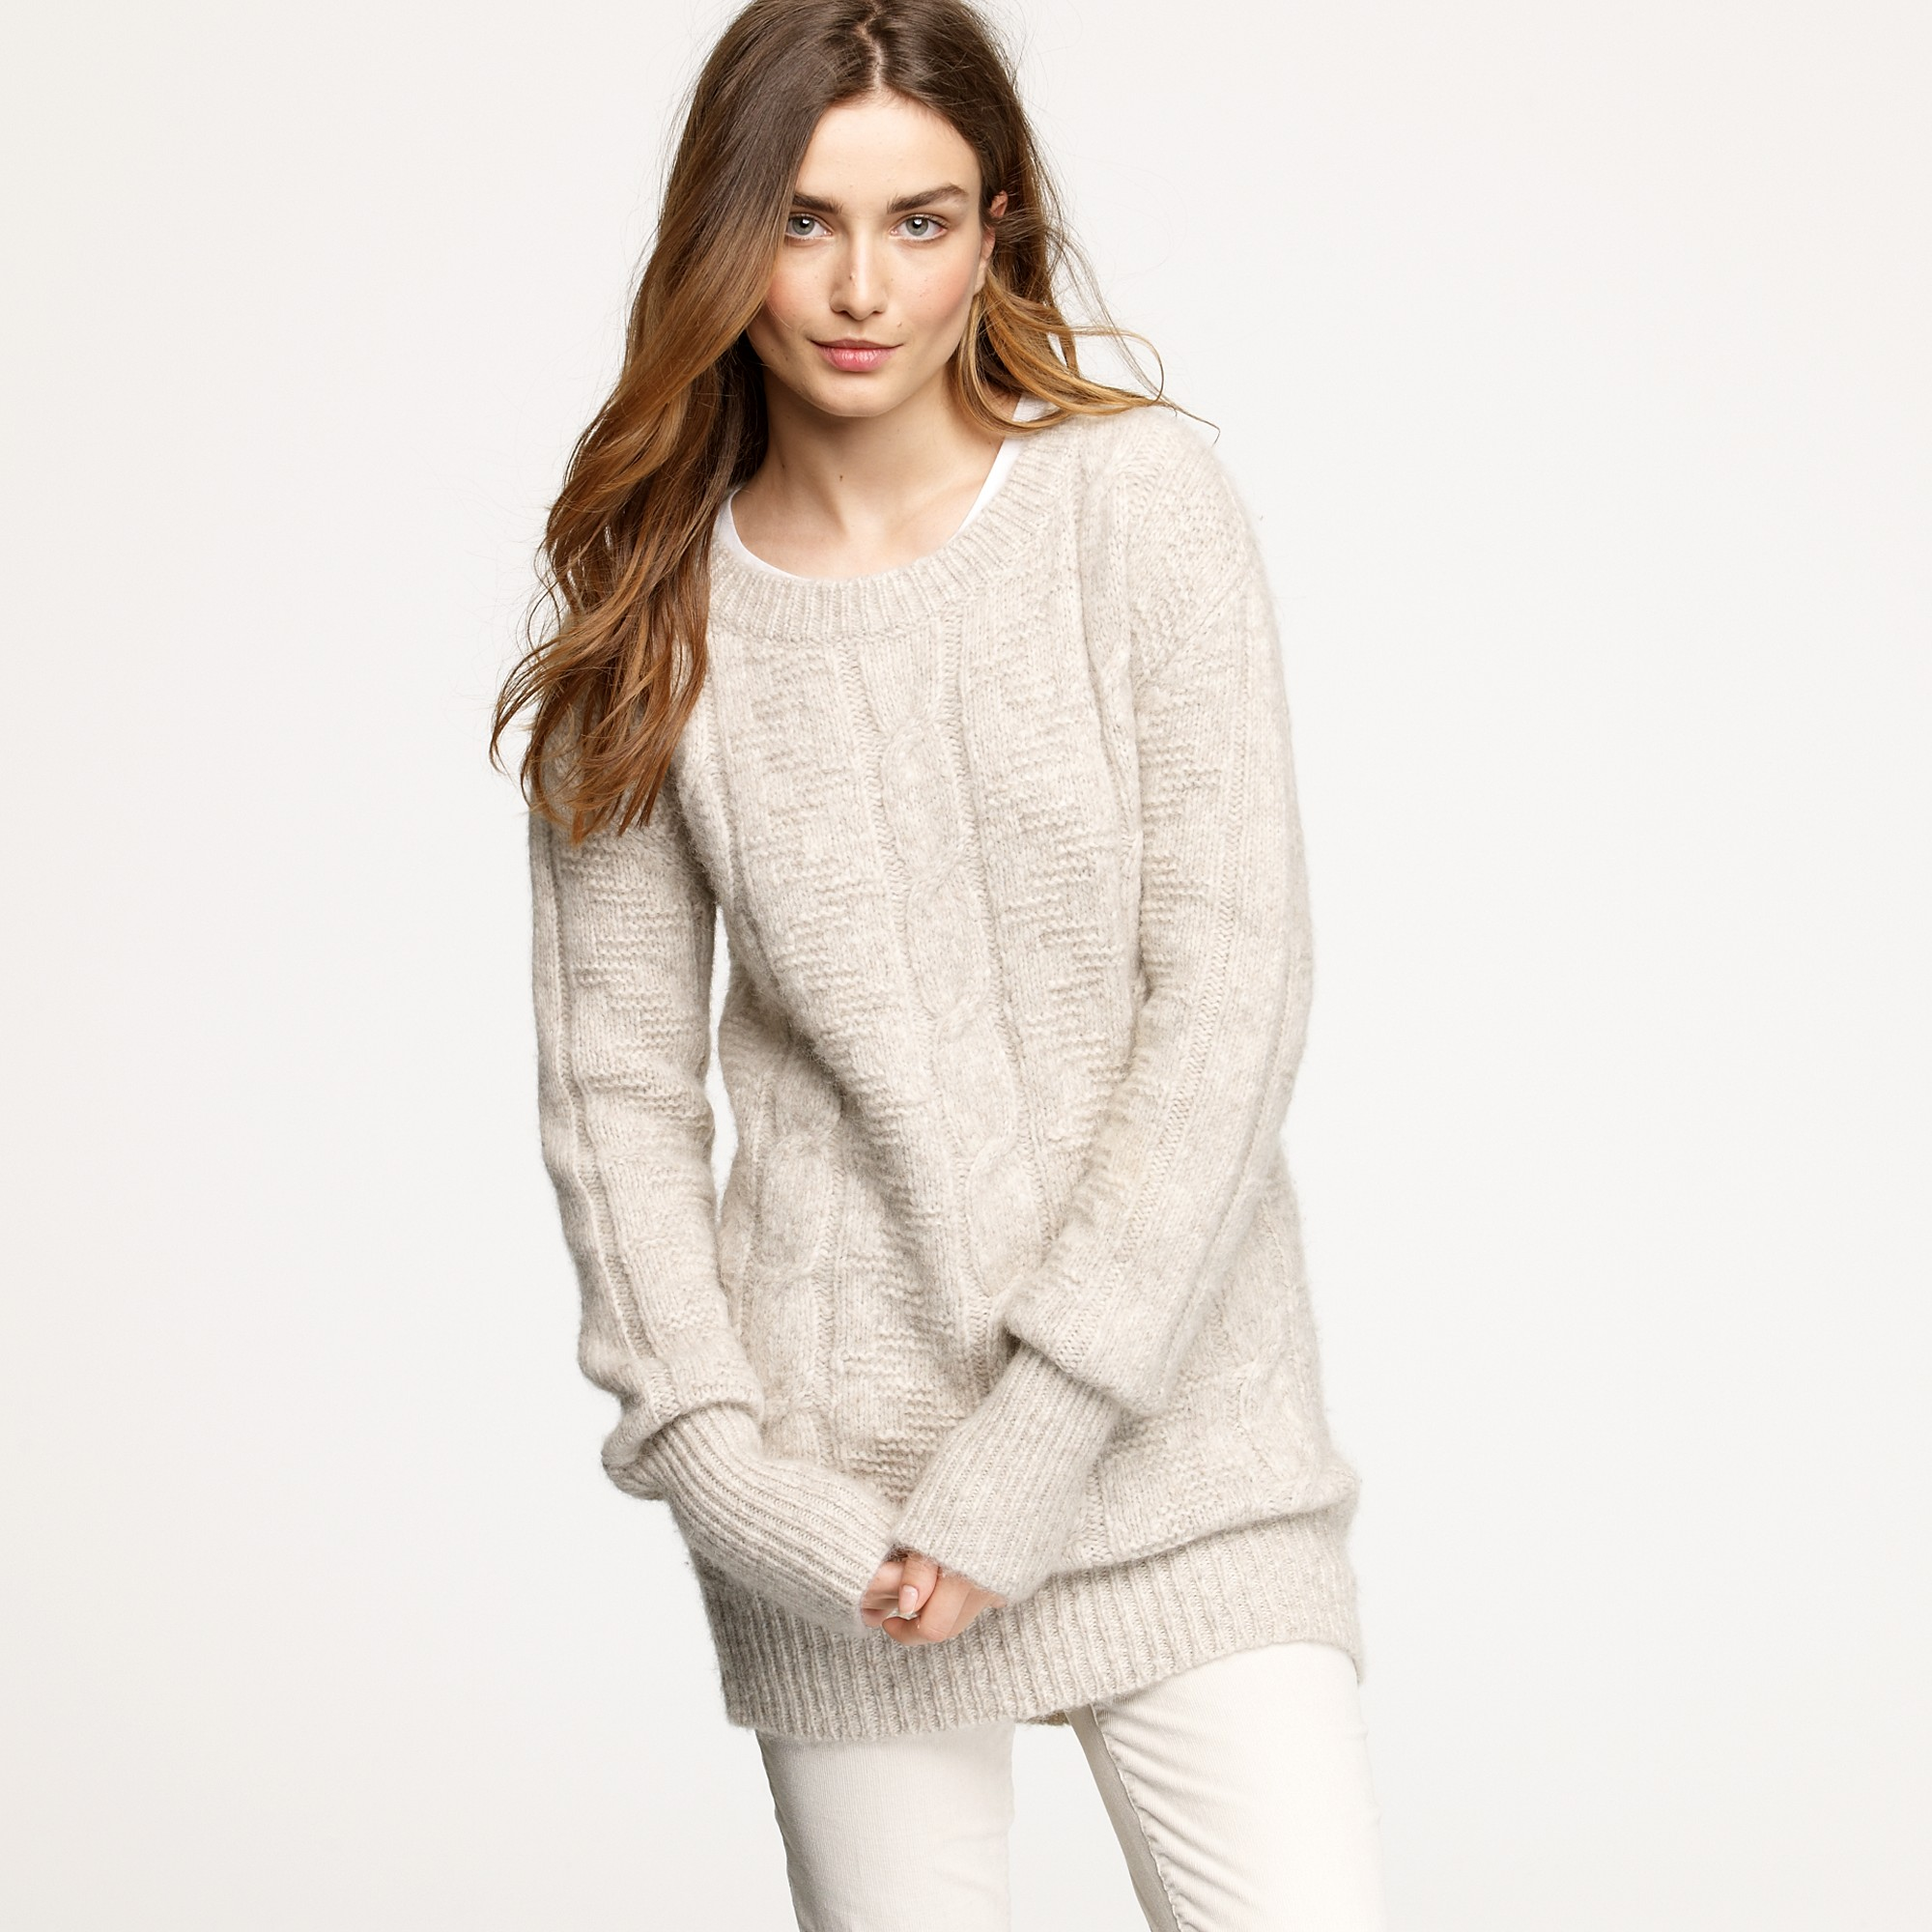 J.crew Nili Lotan® Cable Sweater in Natural | Lyst